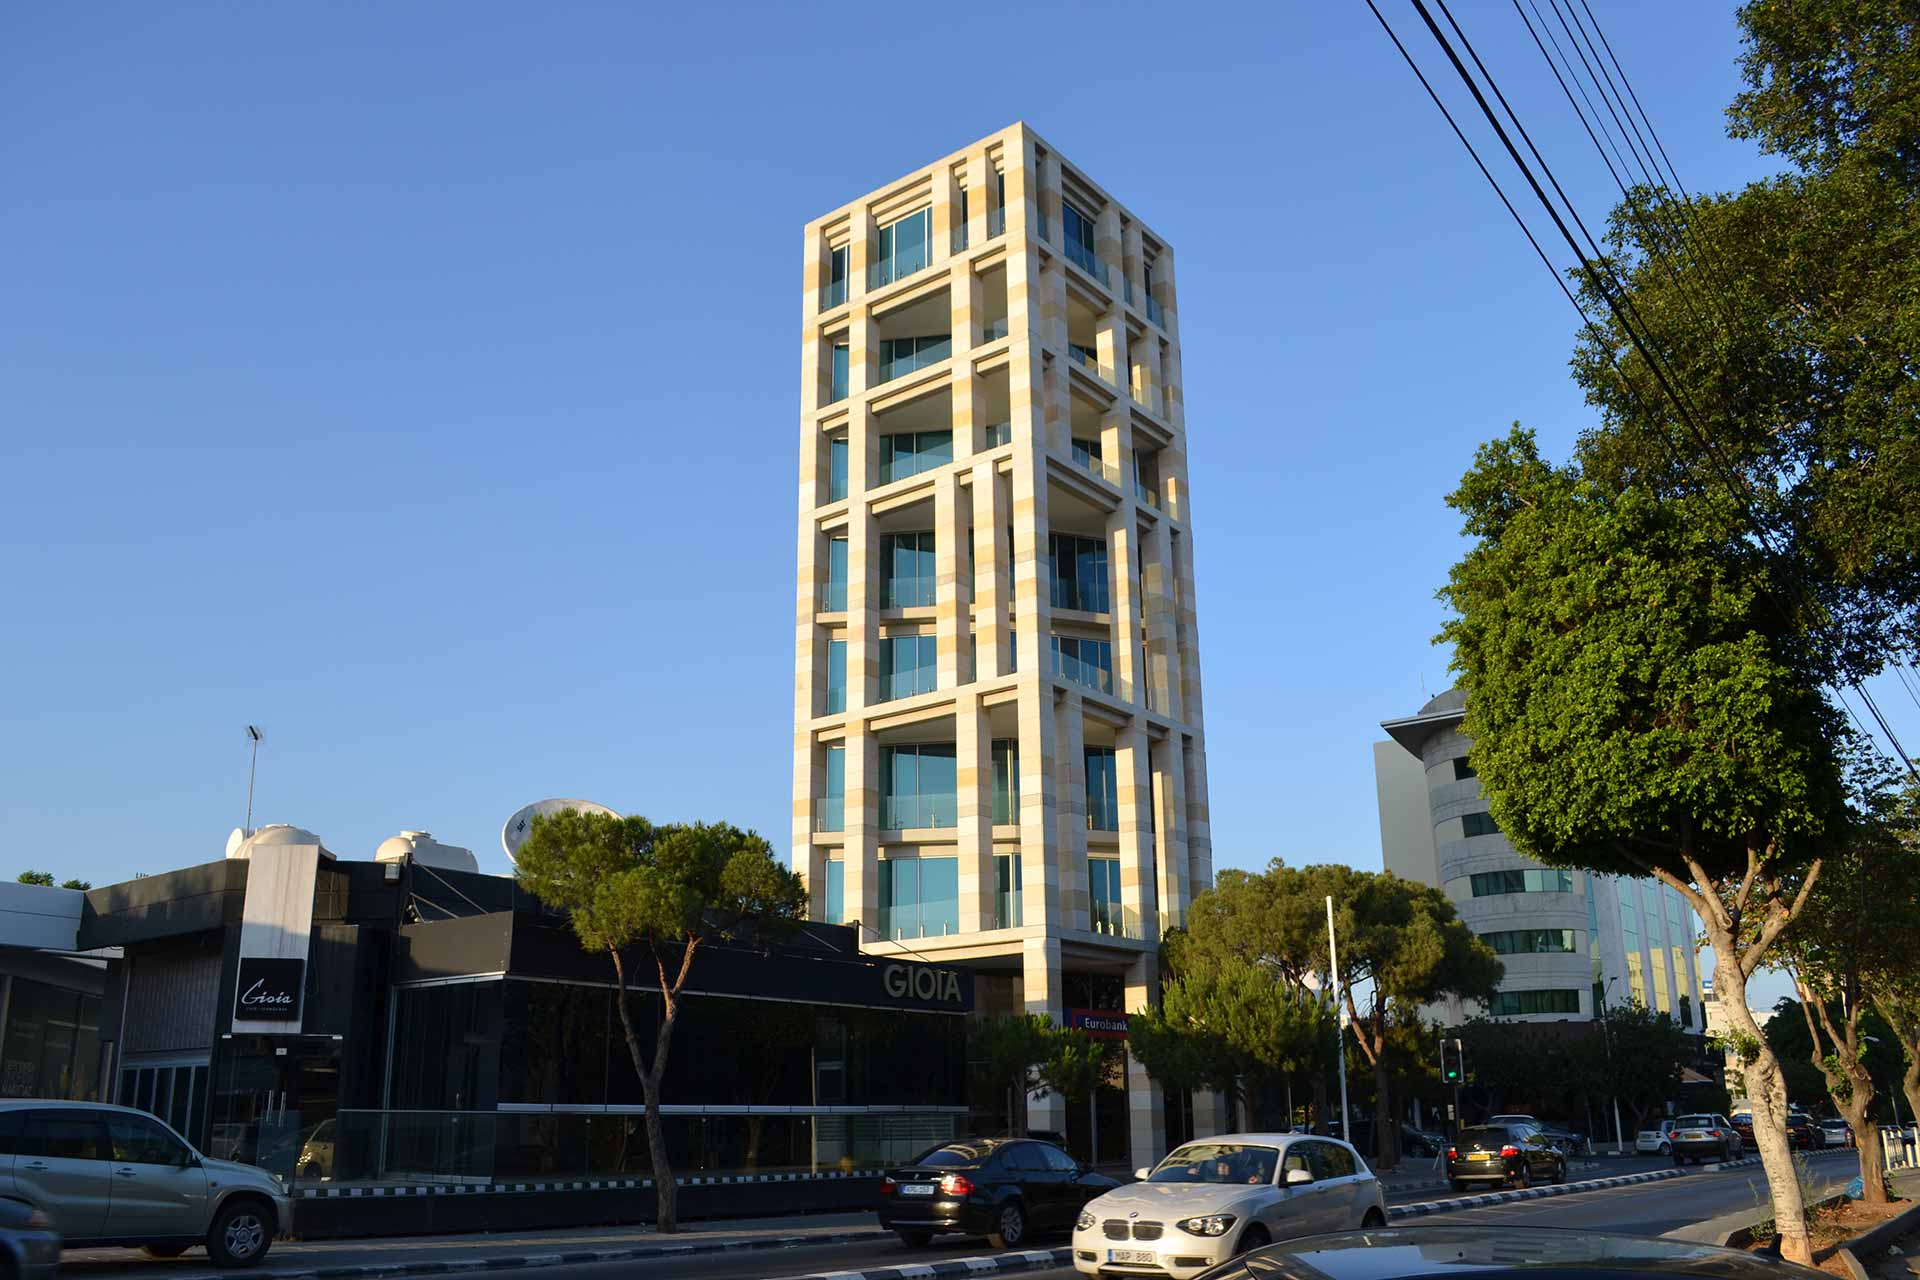 The Elias Neocleous & Co. tower in Limassol, Cyprus. Credit: Stelios Orphanides / Sara Farolfi